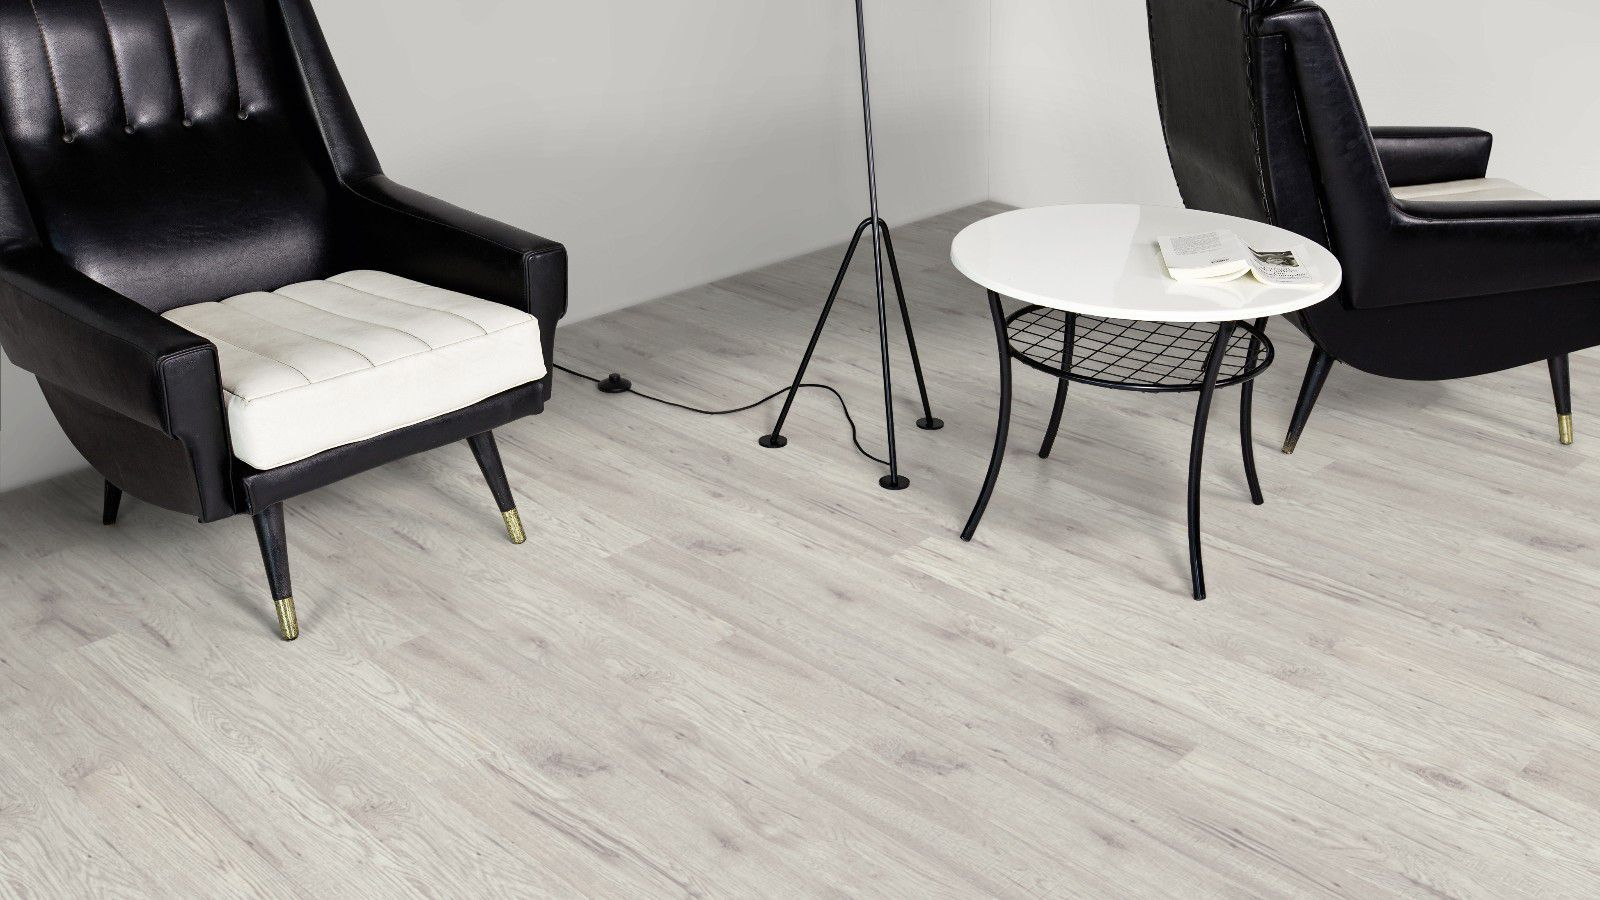 Ostend Fresno Effect Antique Finish Laminate Flooring 1 76 M² Pack Rooms Diy At B Q